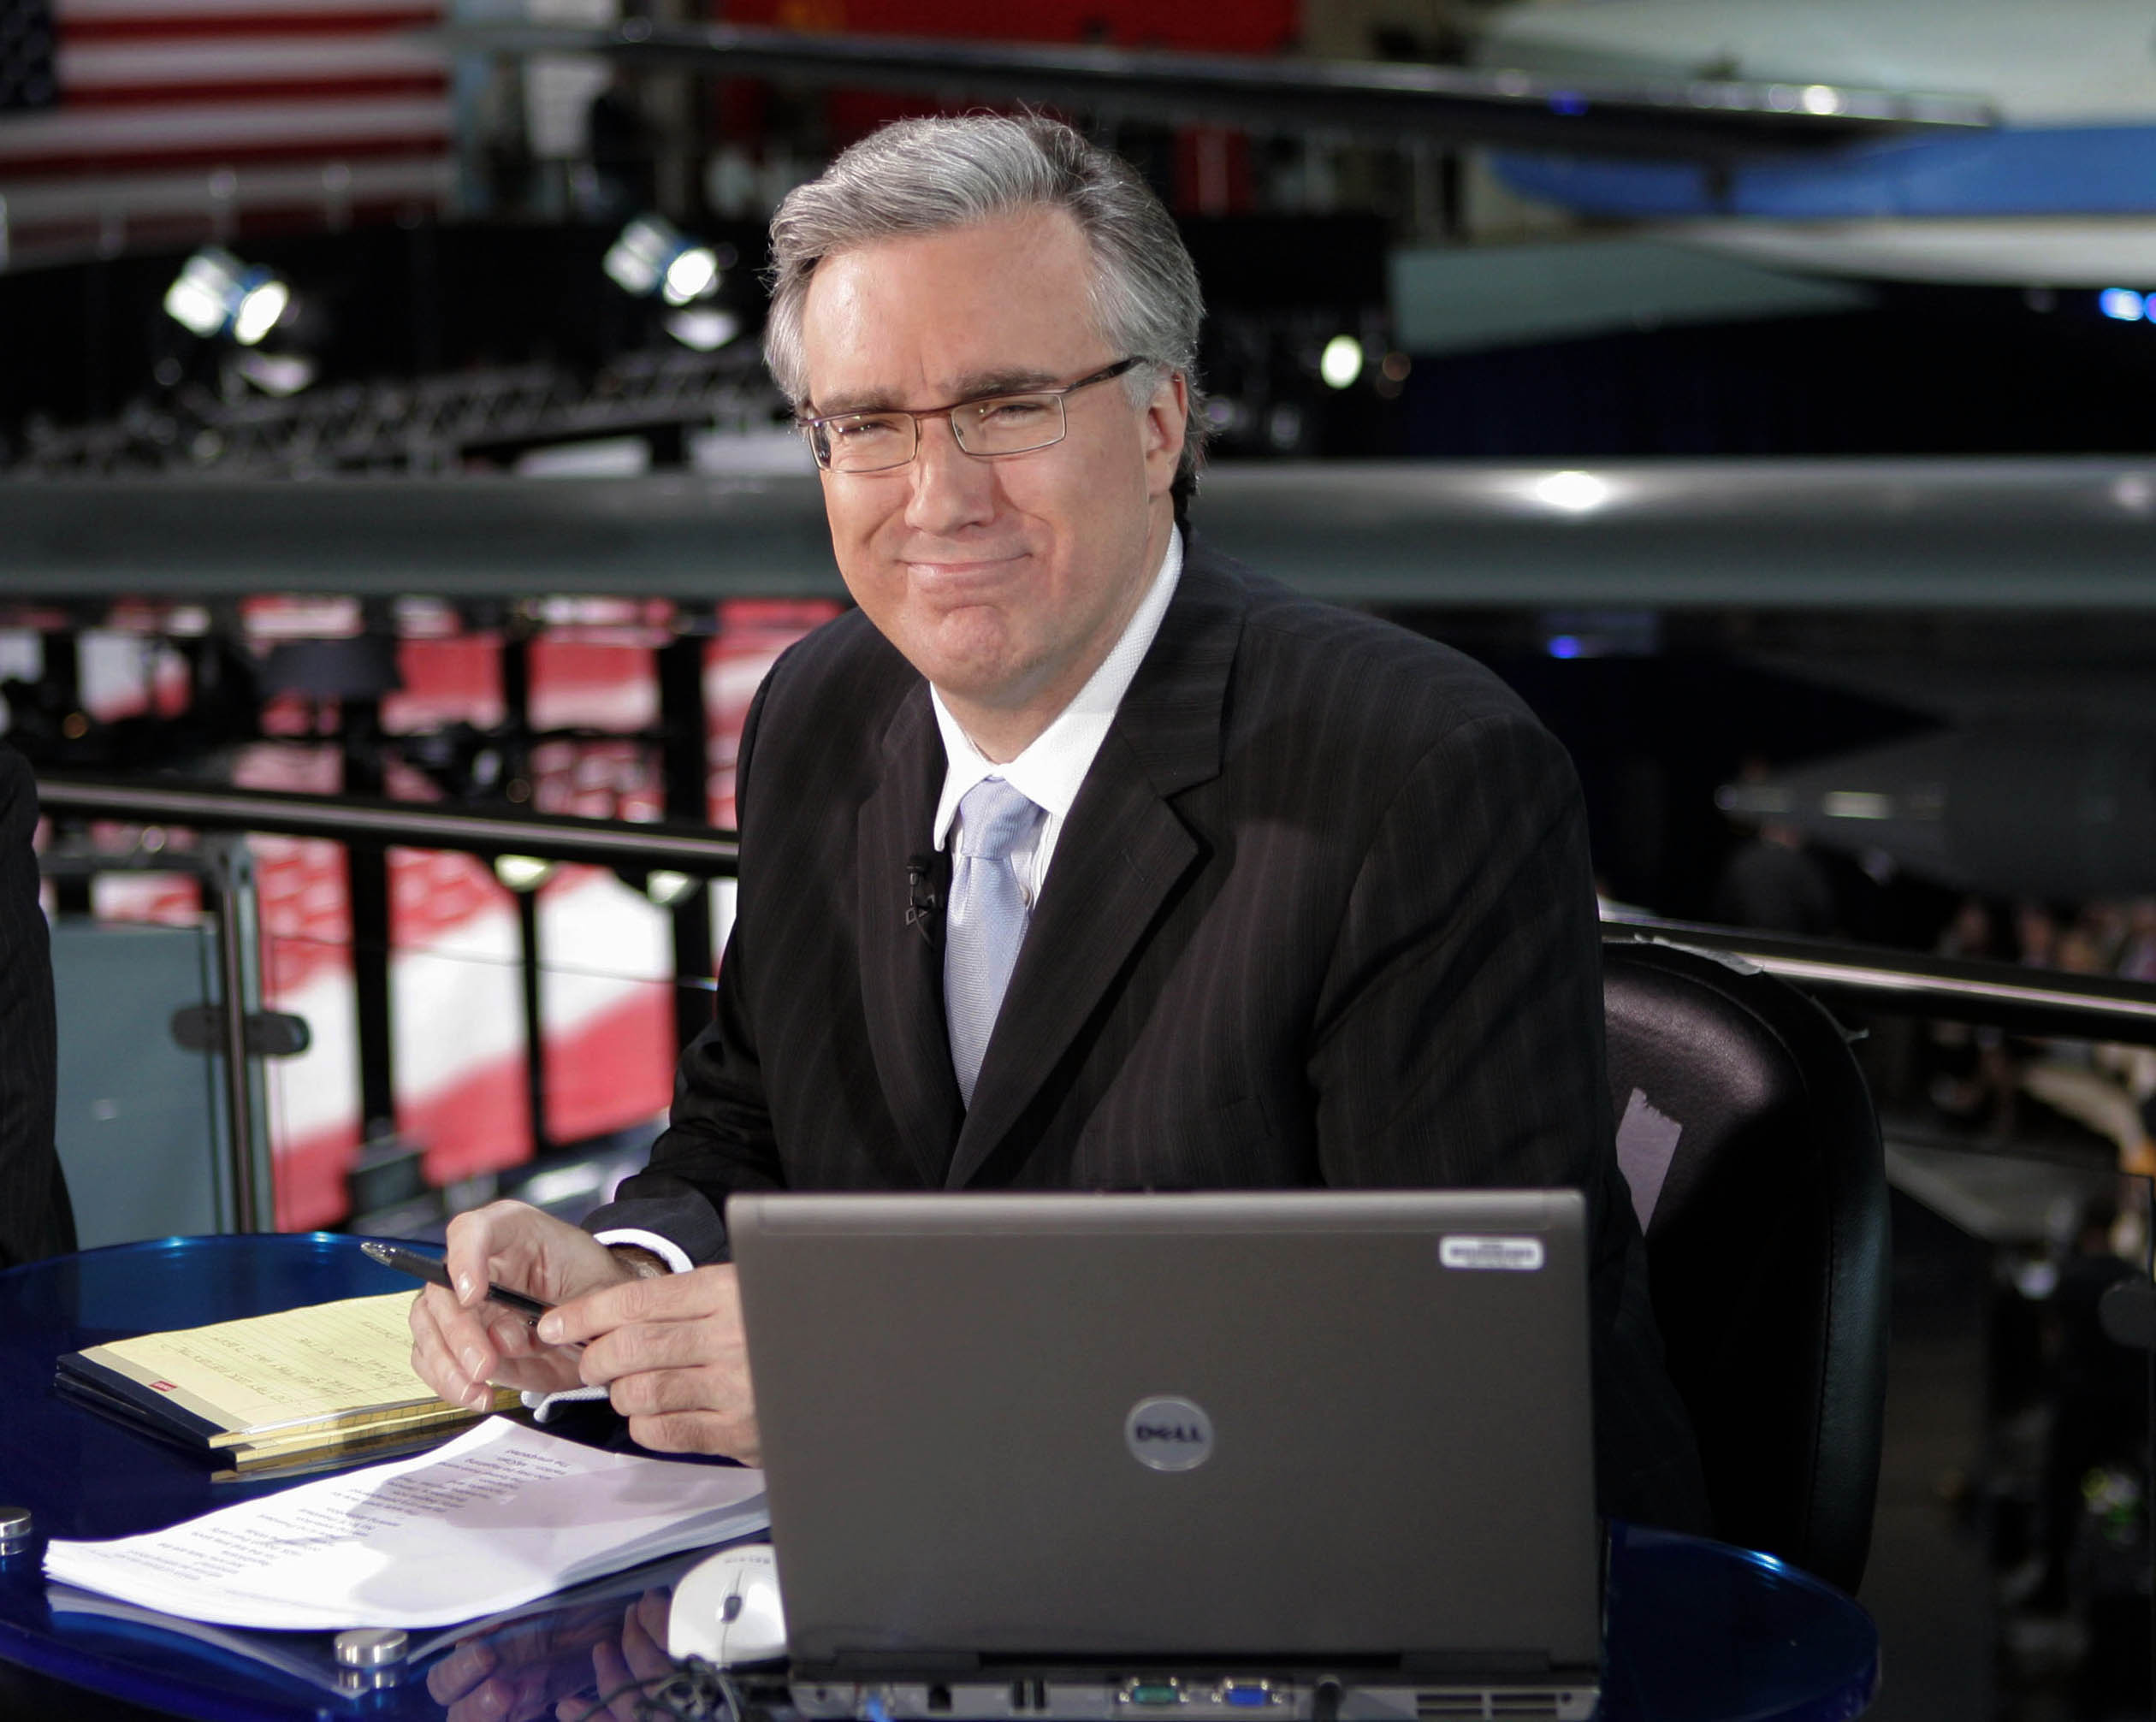 (AP Photo/Mark J. Terrill) Keith Olbermann poses at the Ronald Reagan Library in Simi Valley, Calif. Current TV has dismissed Keith Olbermann from its talk-show lineup after less than a year, Friday, March 30, 2012.